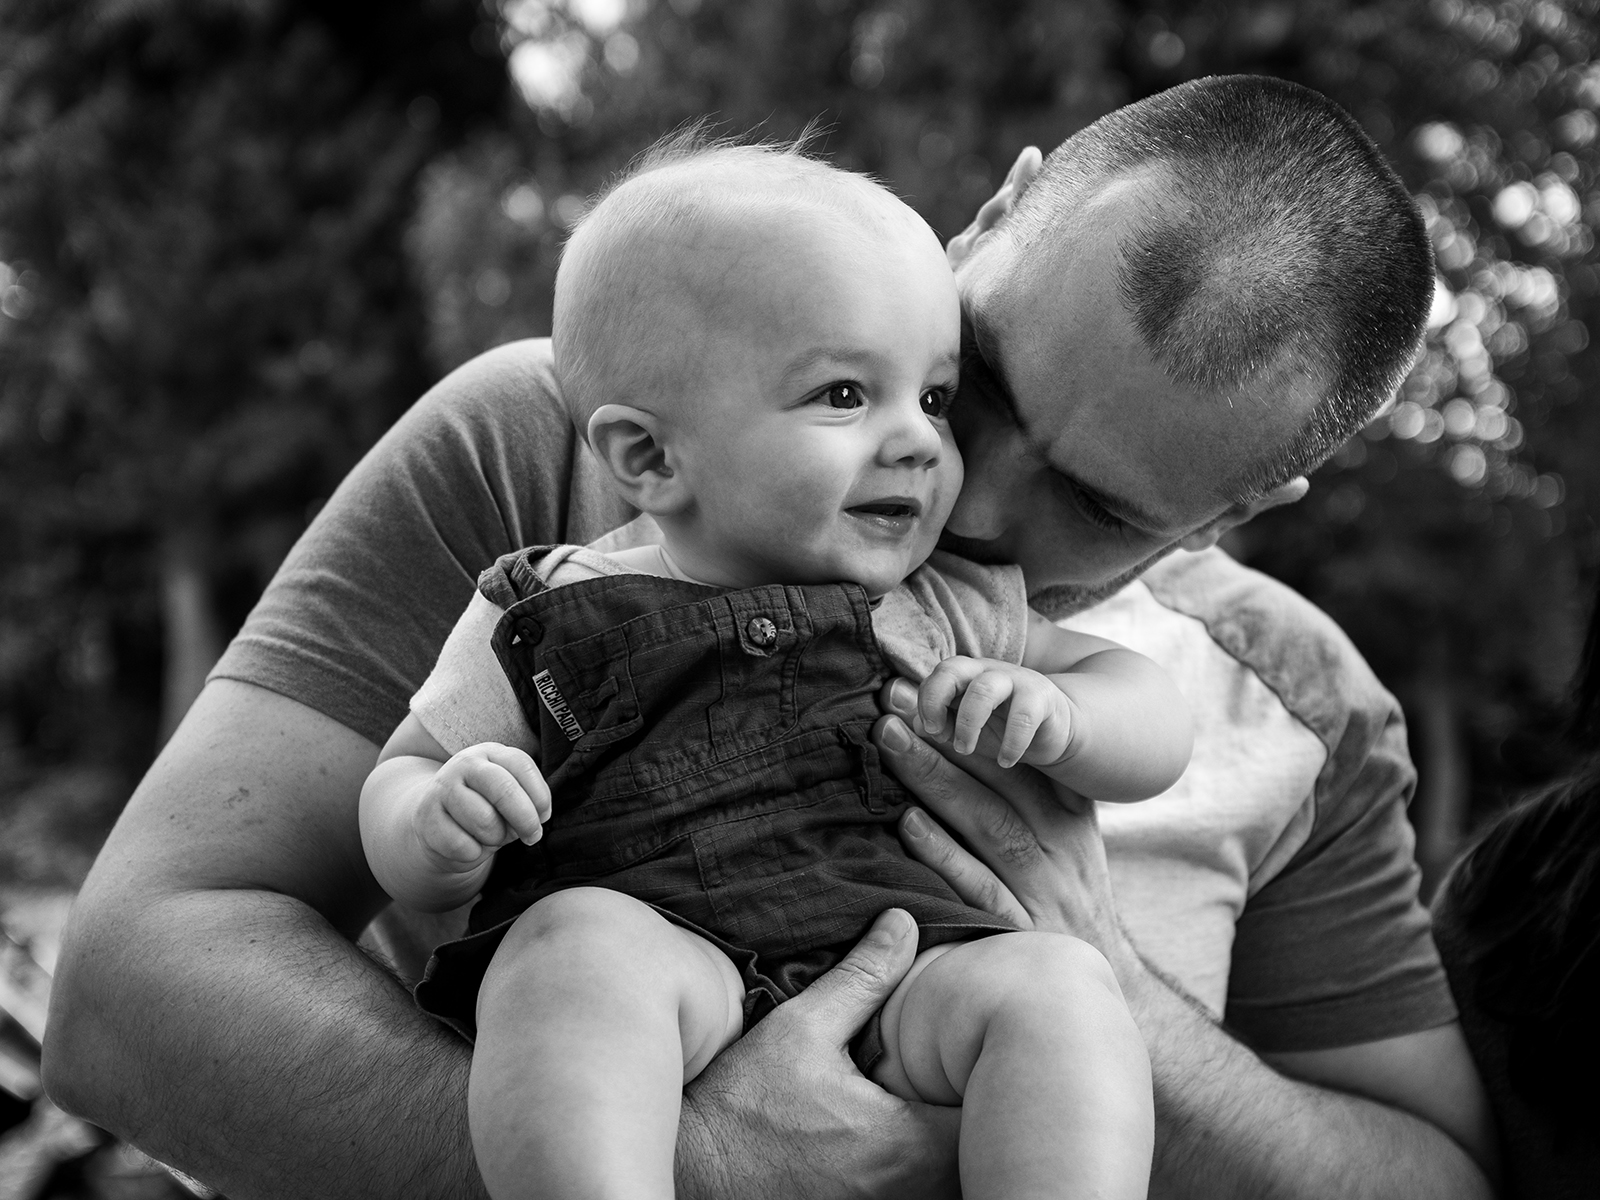 A baby boy is held by his father during a photoshoot